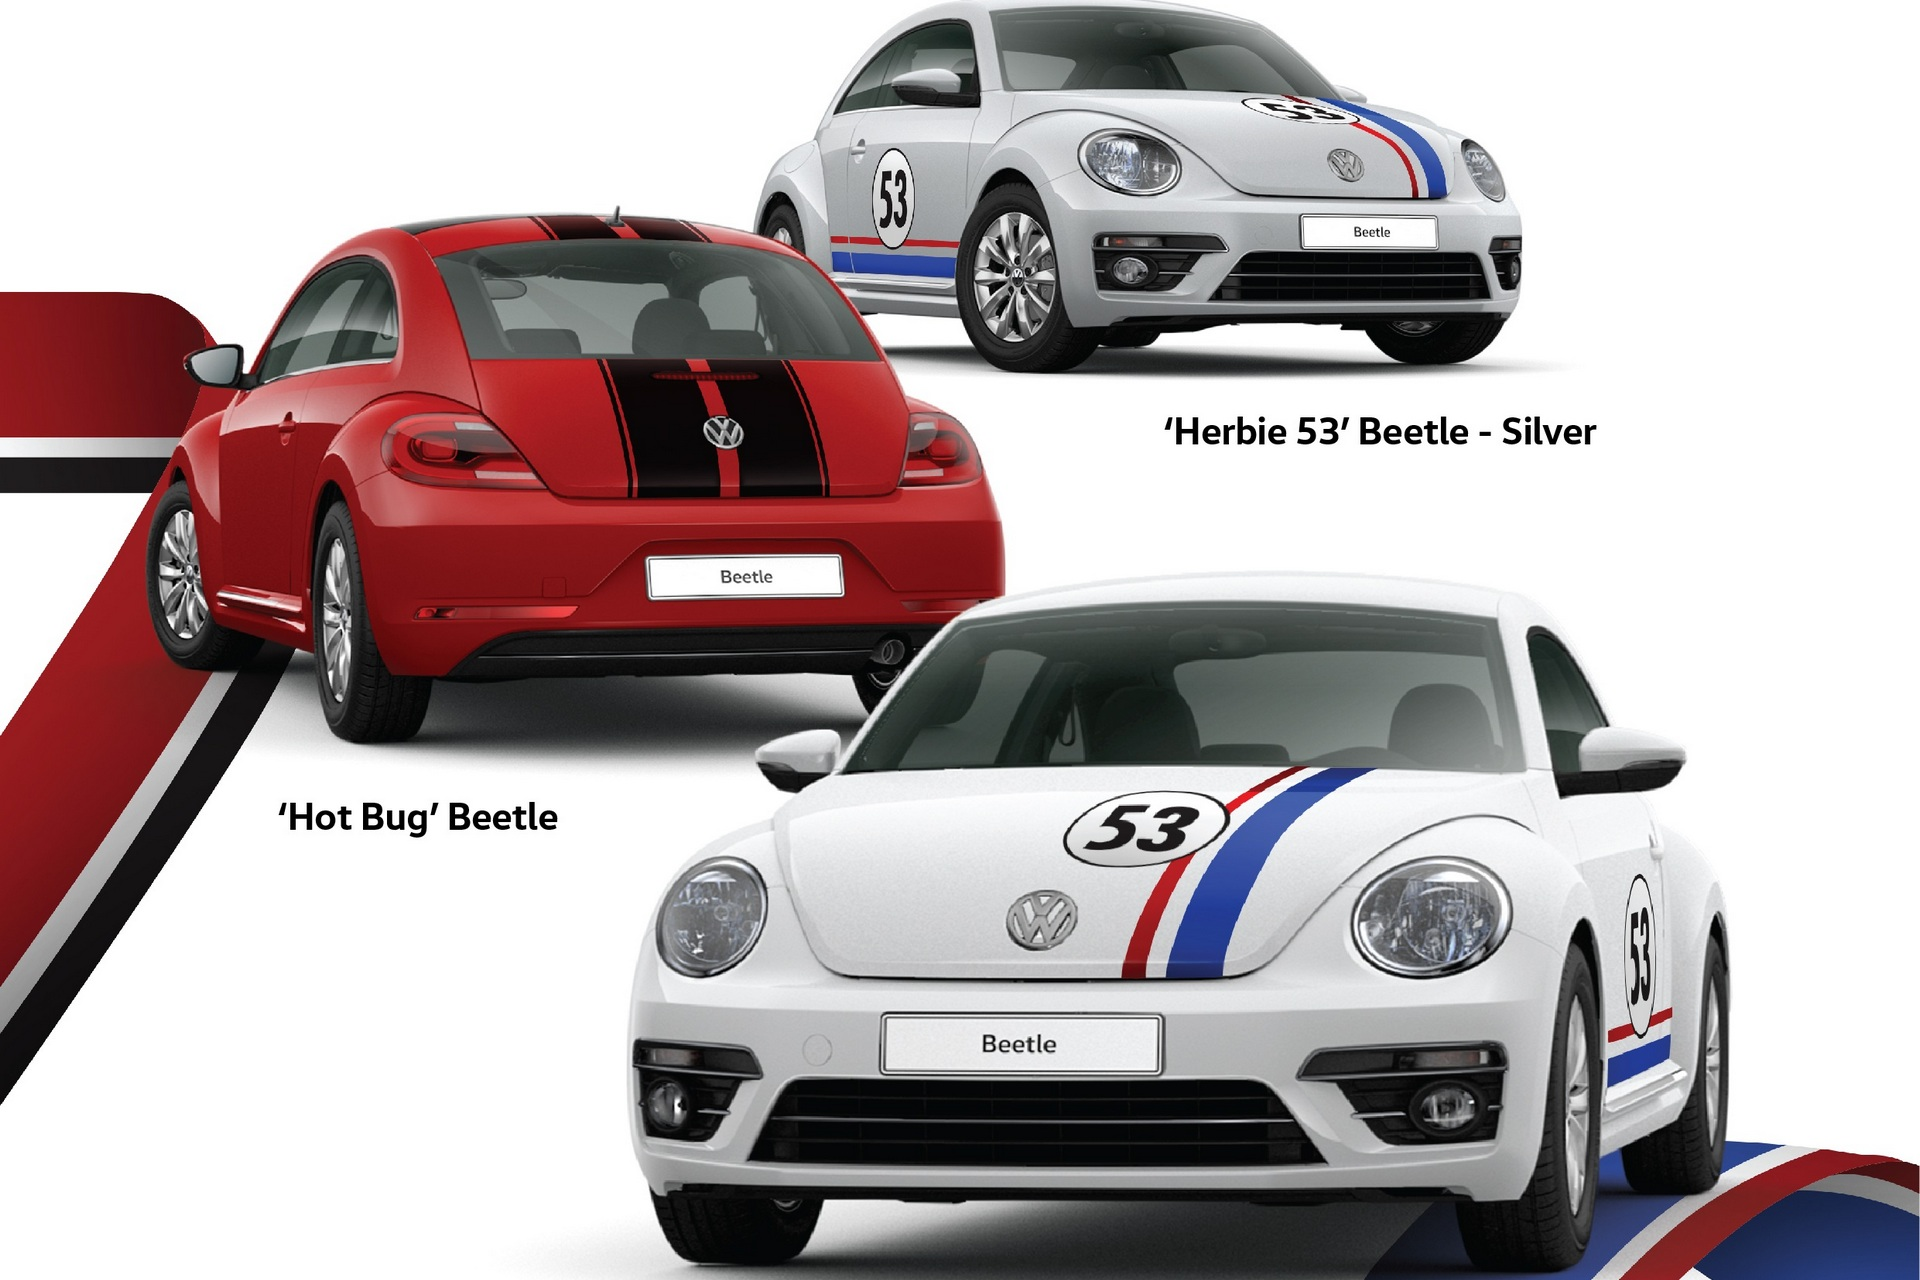 herbie and the hot bug sell like hot cakes